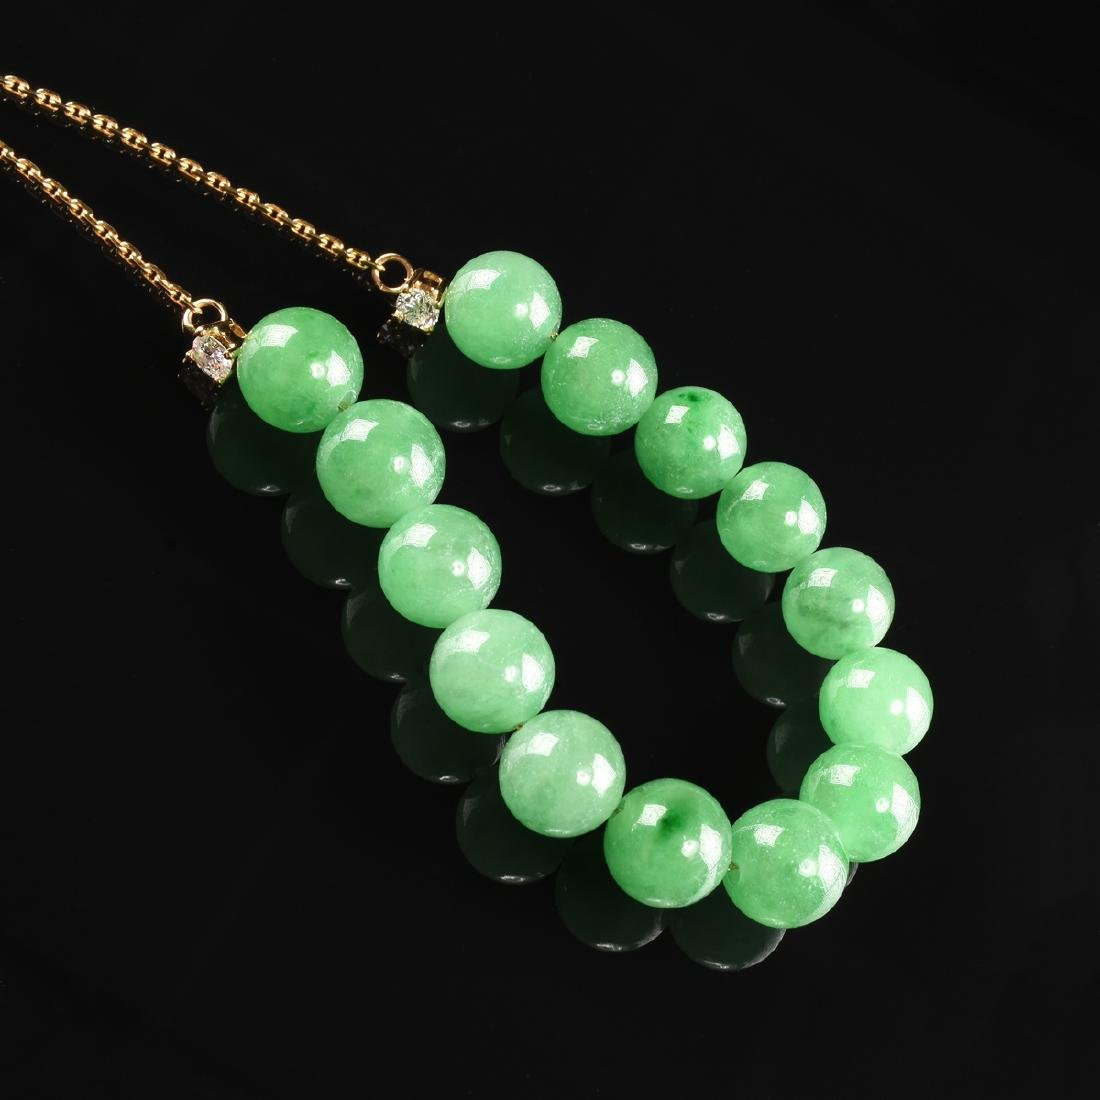 AN 18K YELLOW GOLD, JADE, AND DIAMOND LADY'S JADE